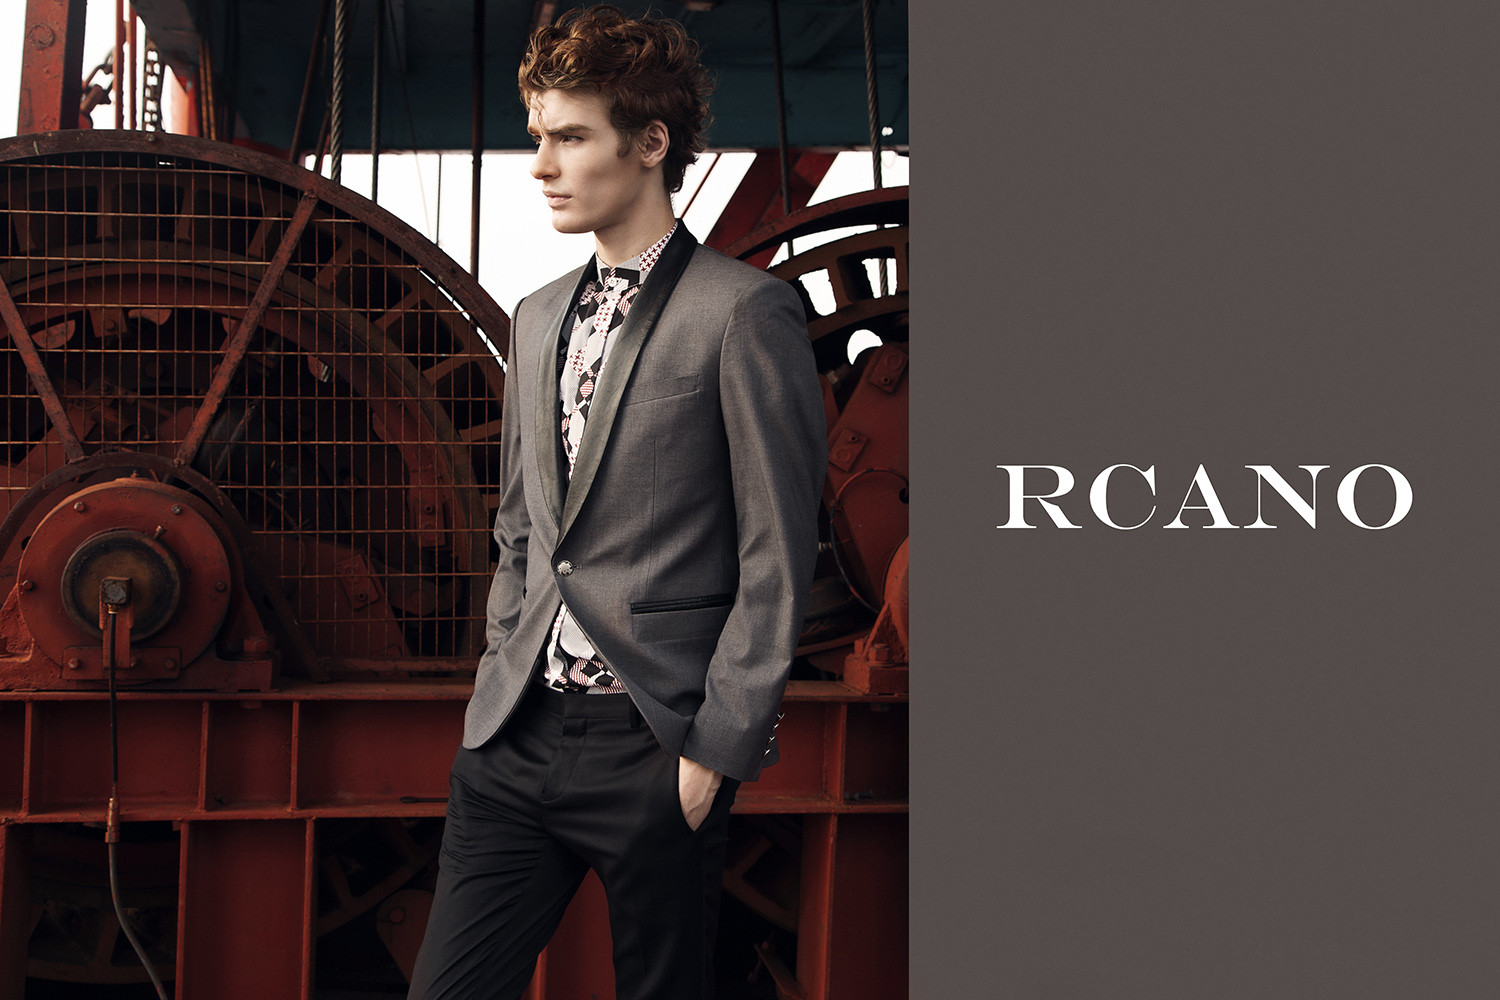 RCANO FW15-8 HIGH RES LOGO.jpg